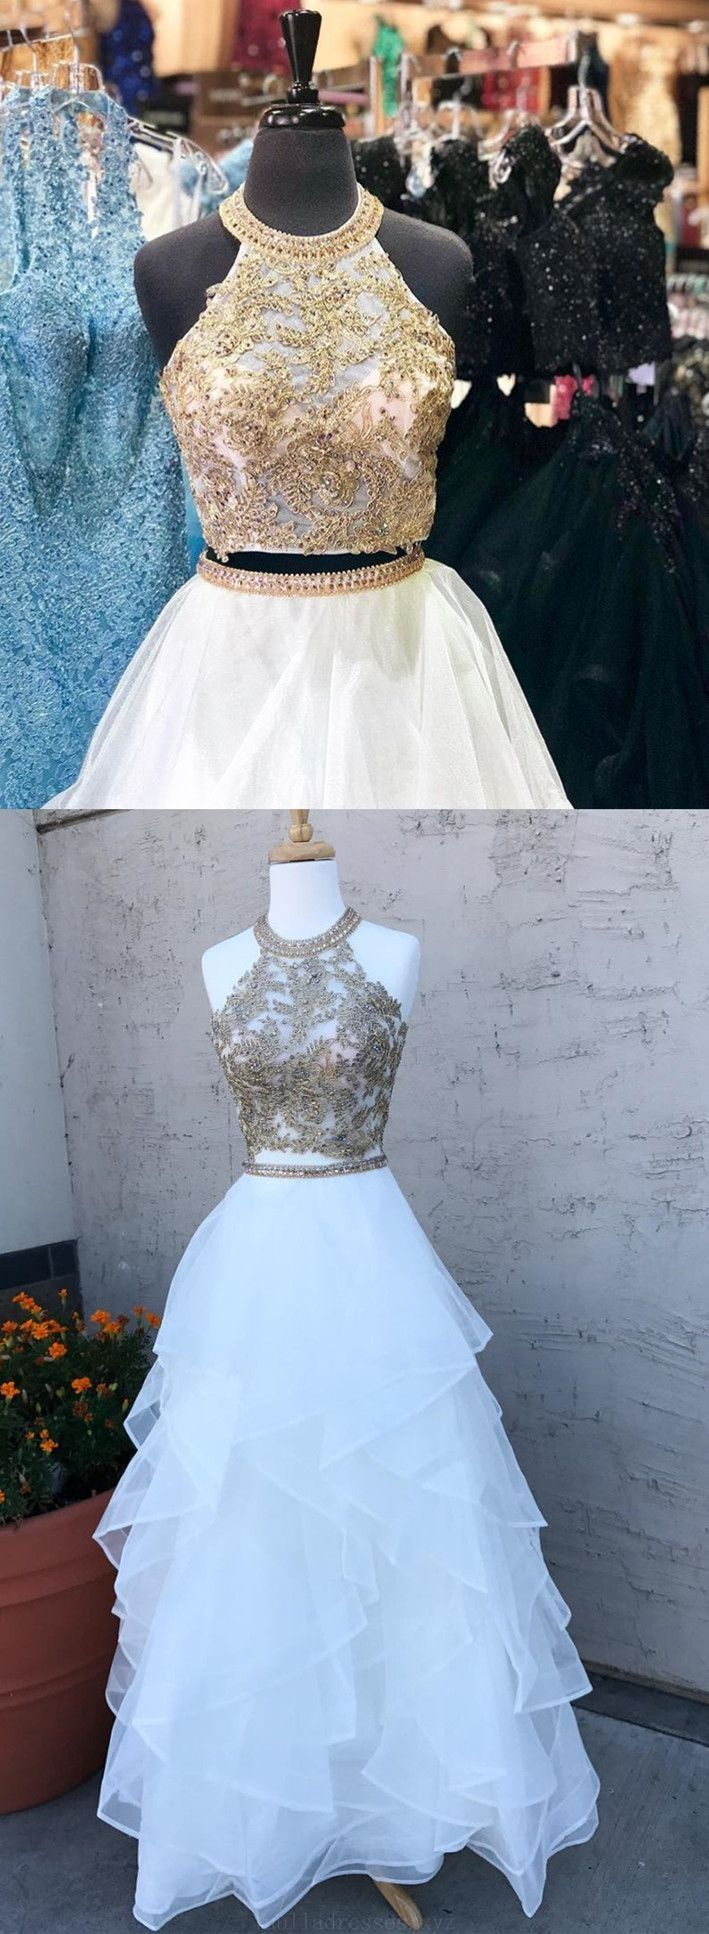 Long prom dresses prom dresses white prom dresses two pieces